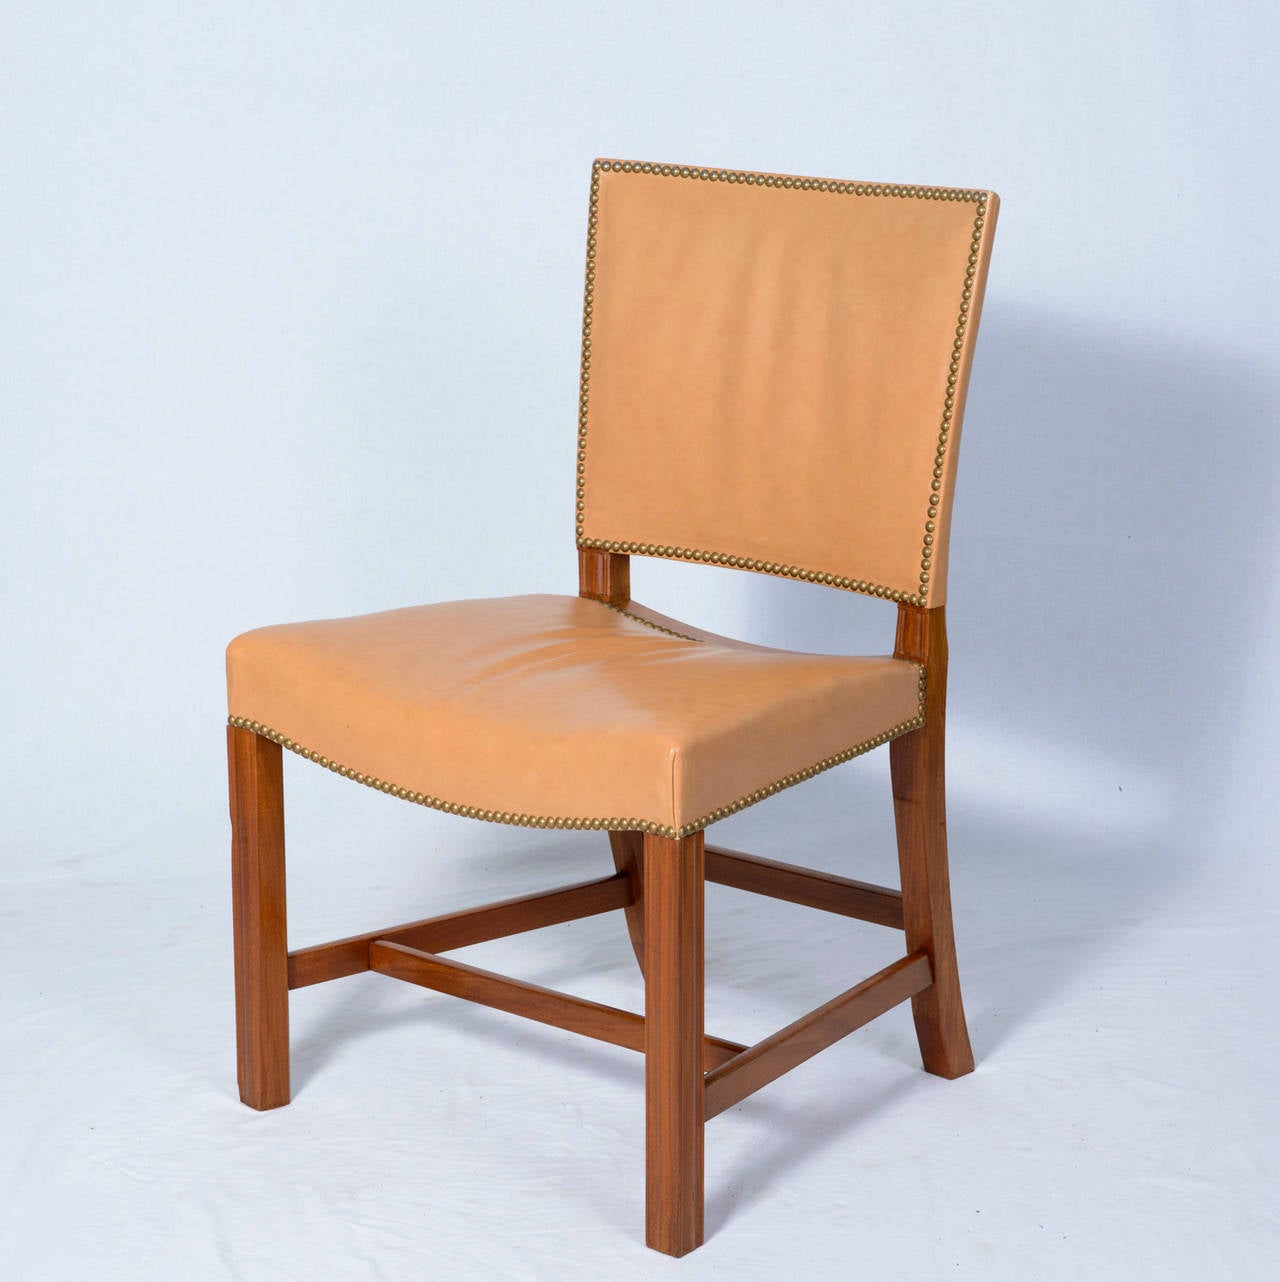 Scandinavian Modern Kaare Klint Side Chair For Sale